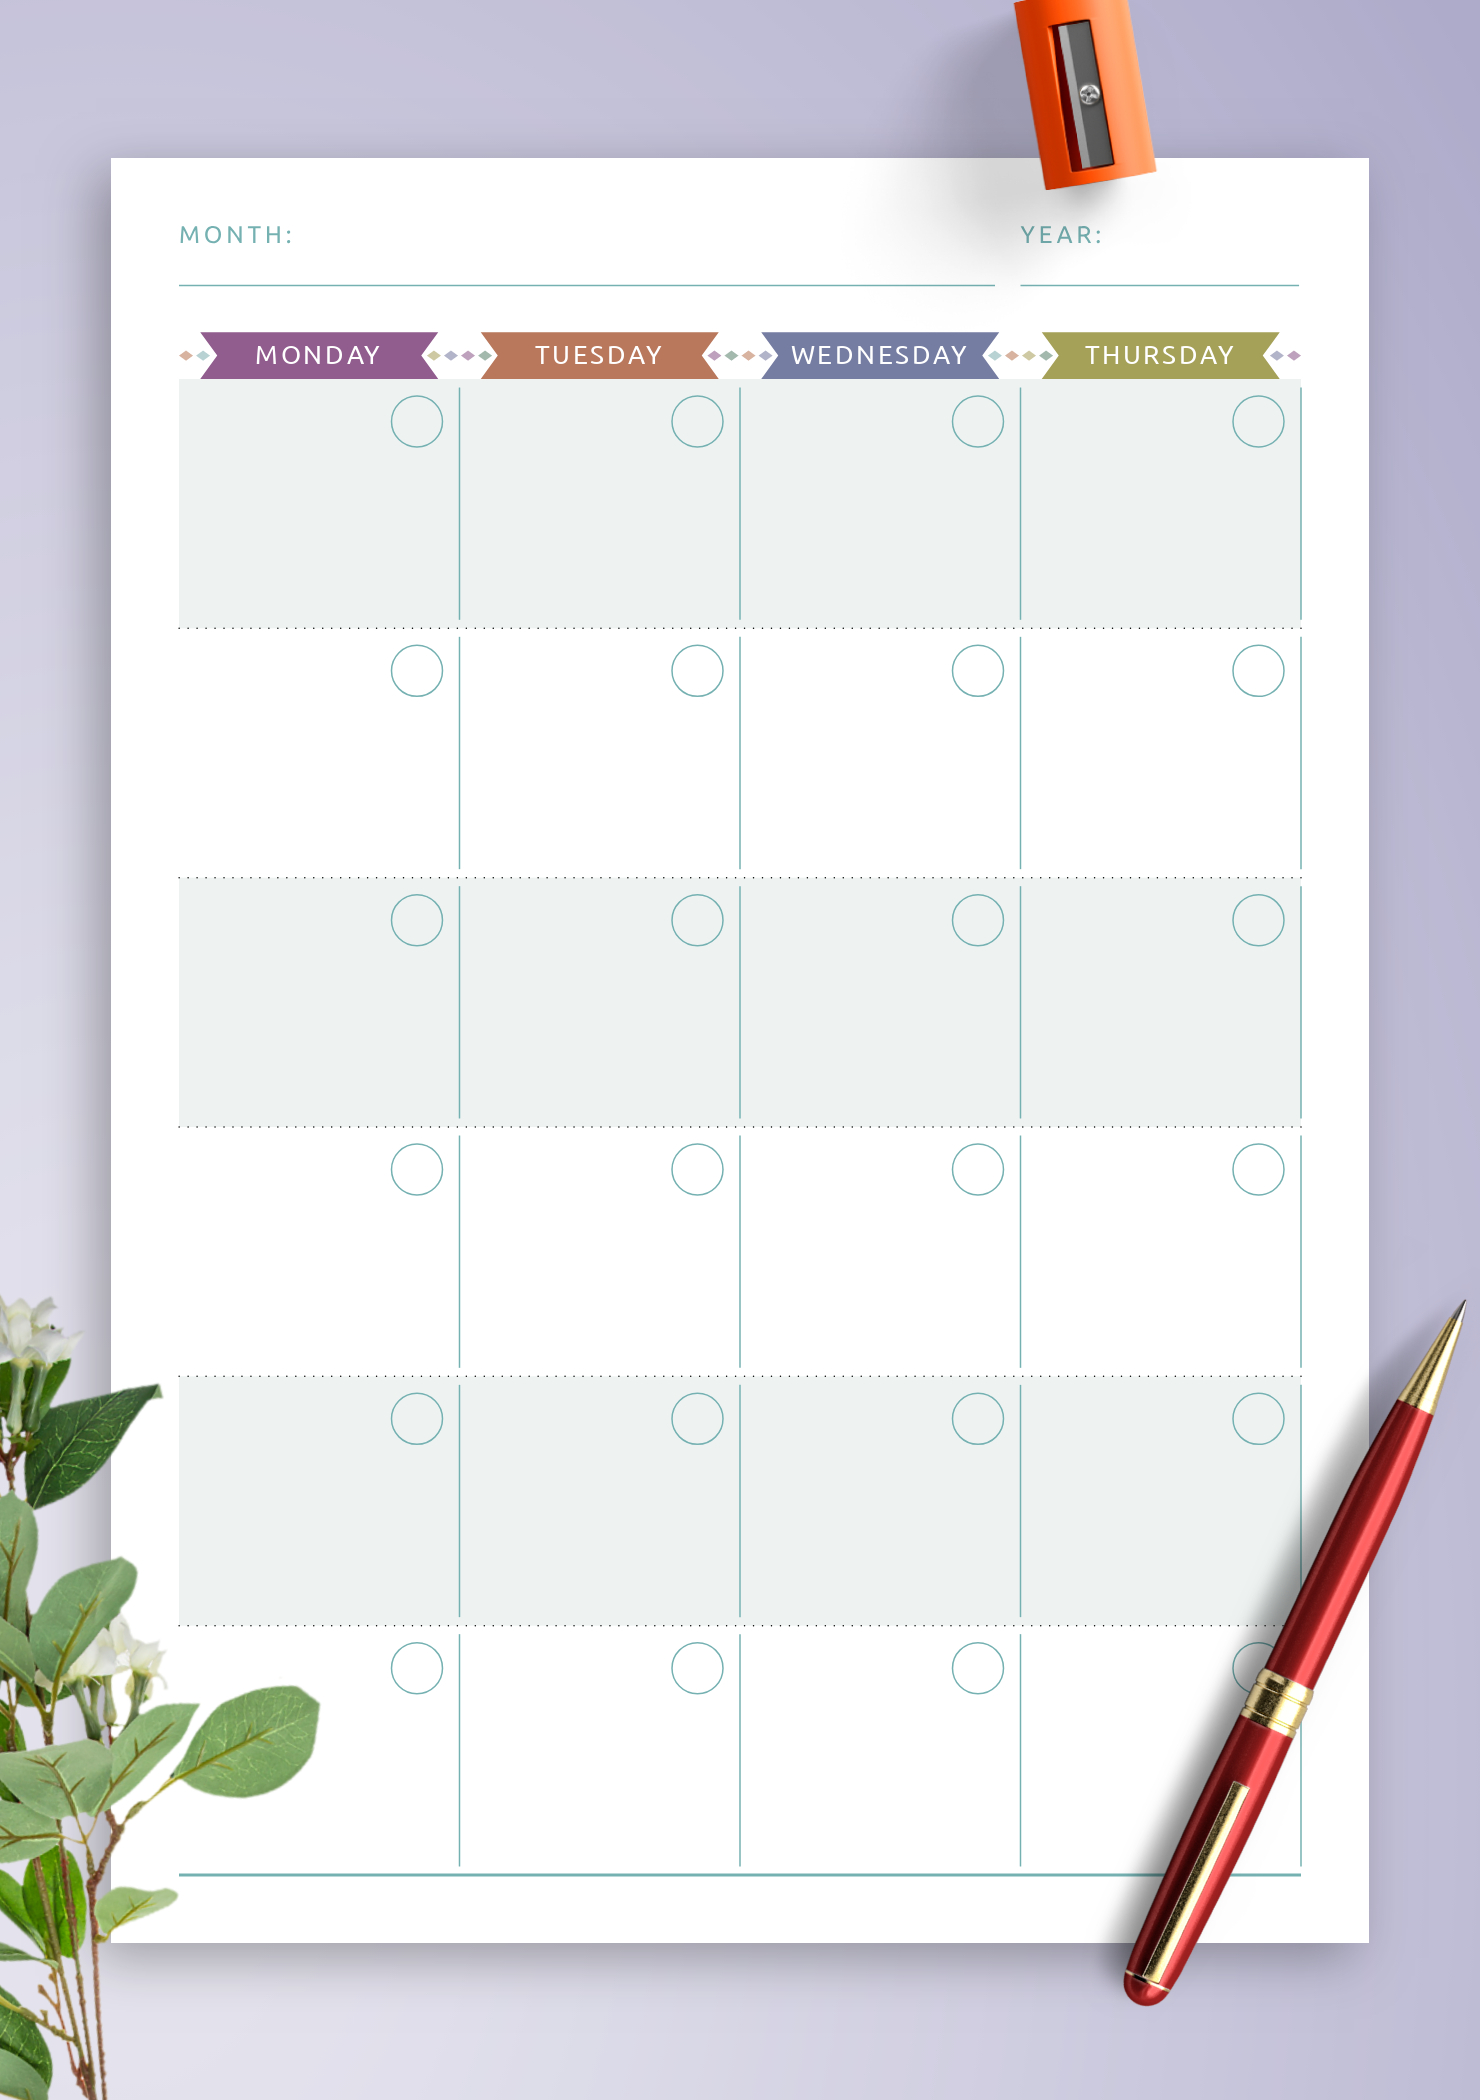 Download Printable Monthly Calendar Planner Undated - Casual